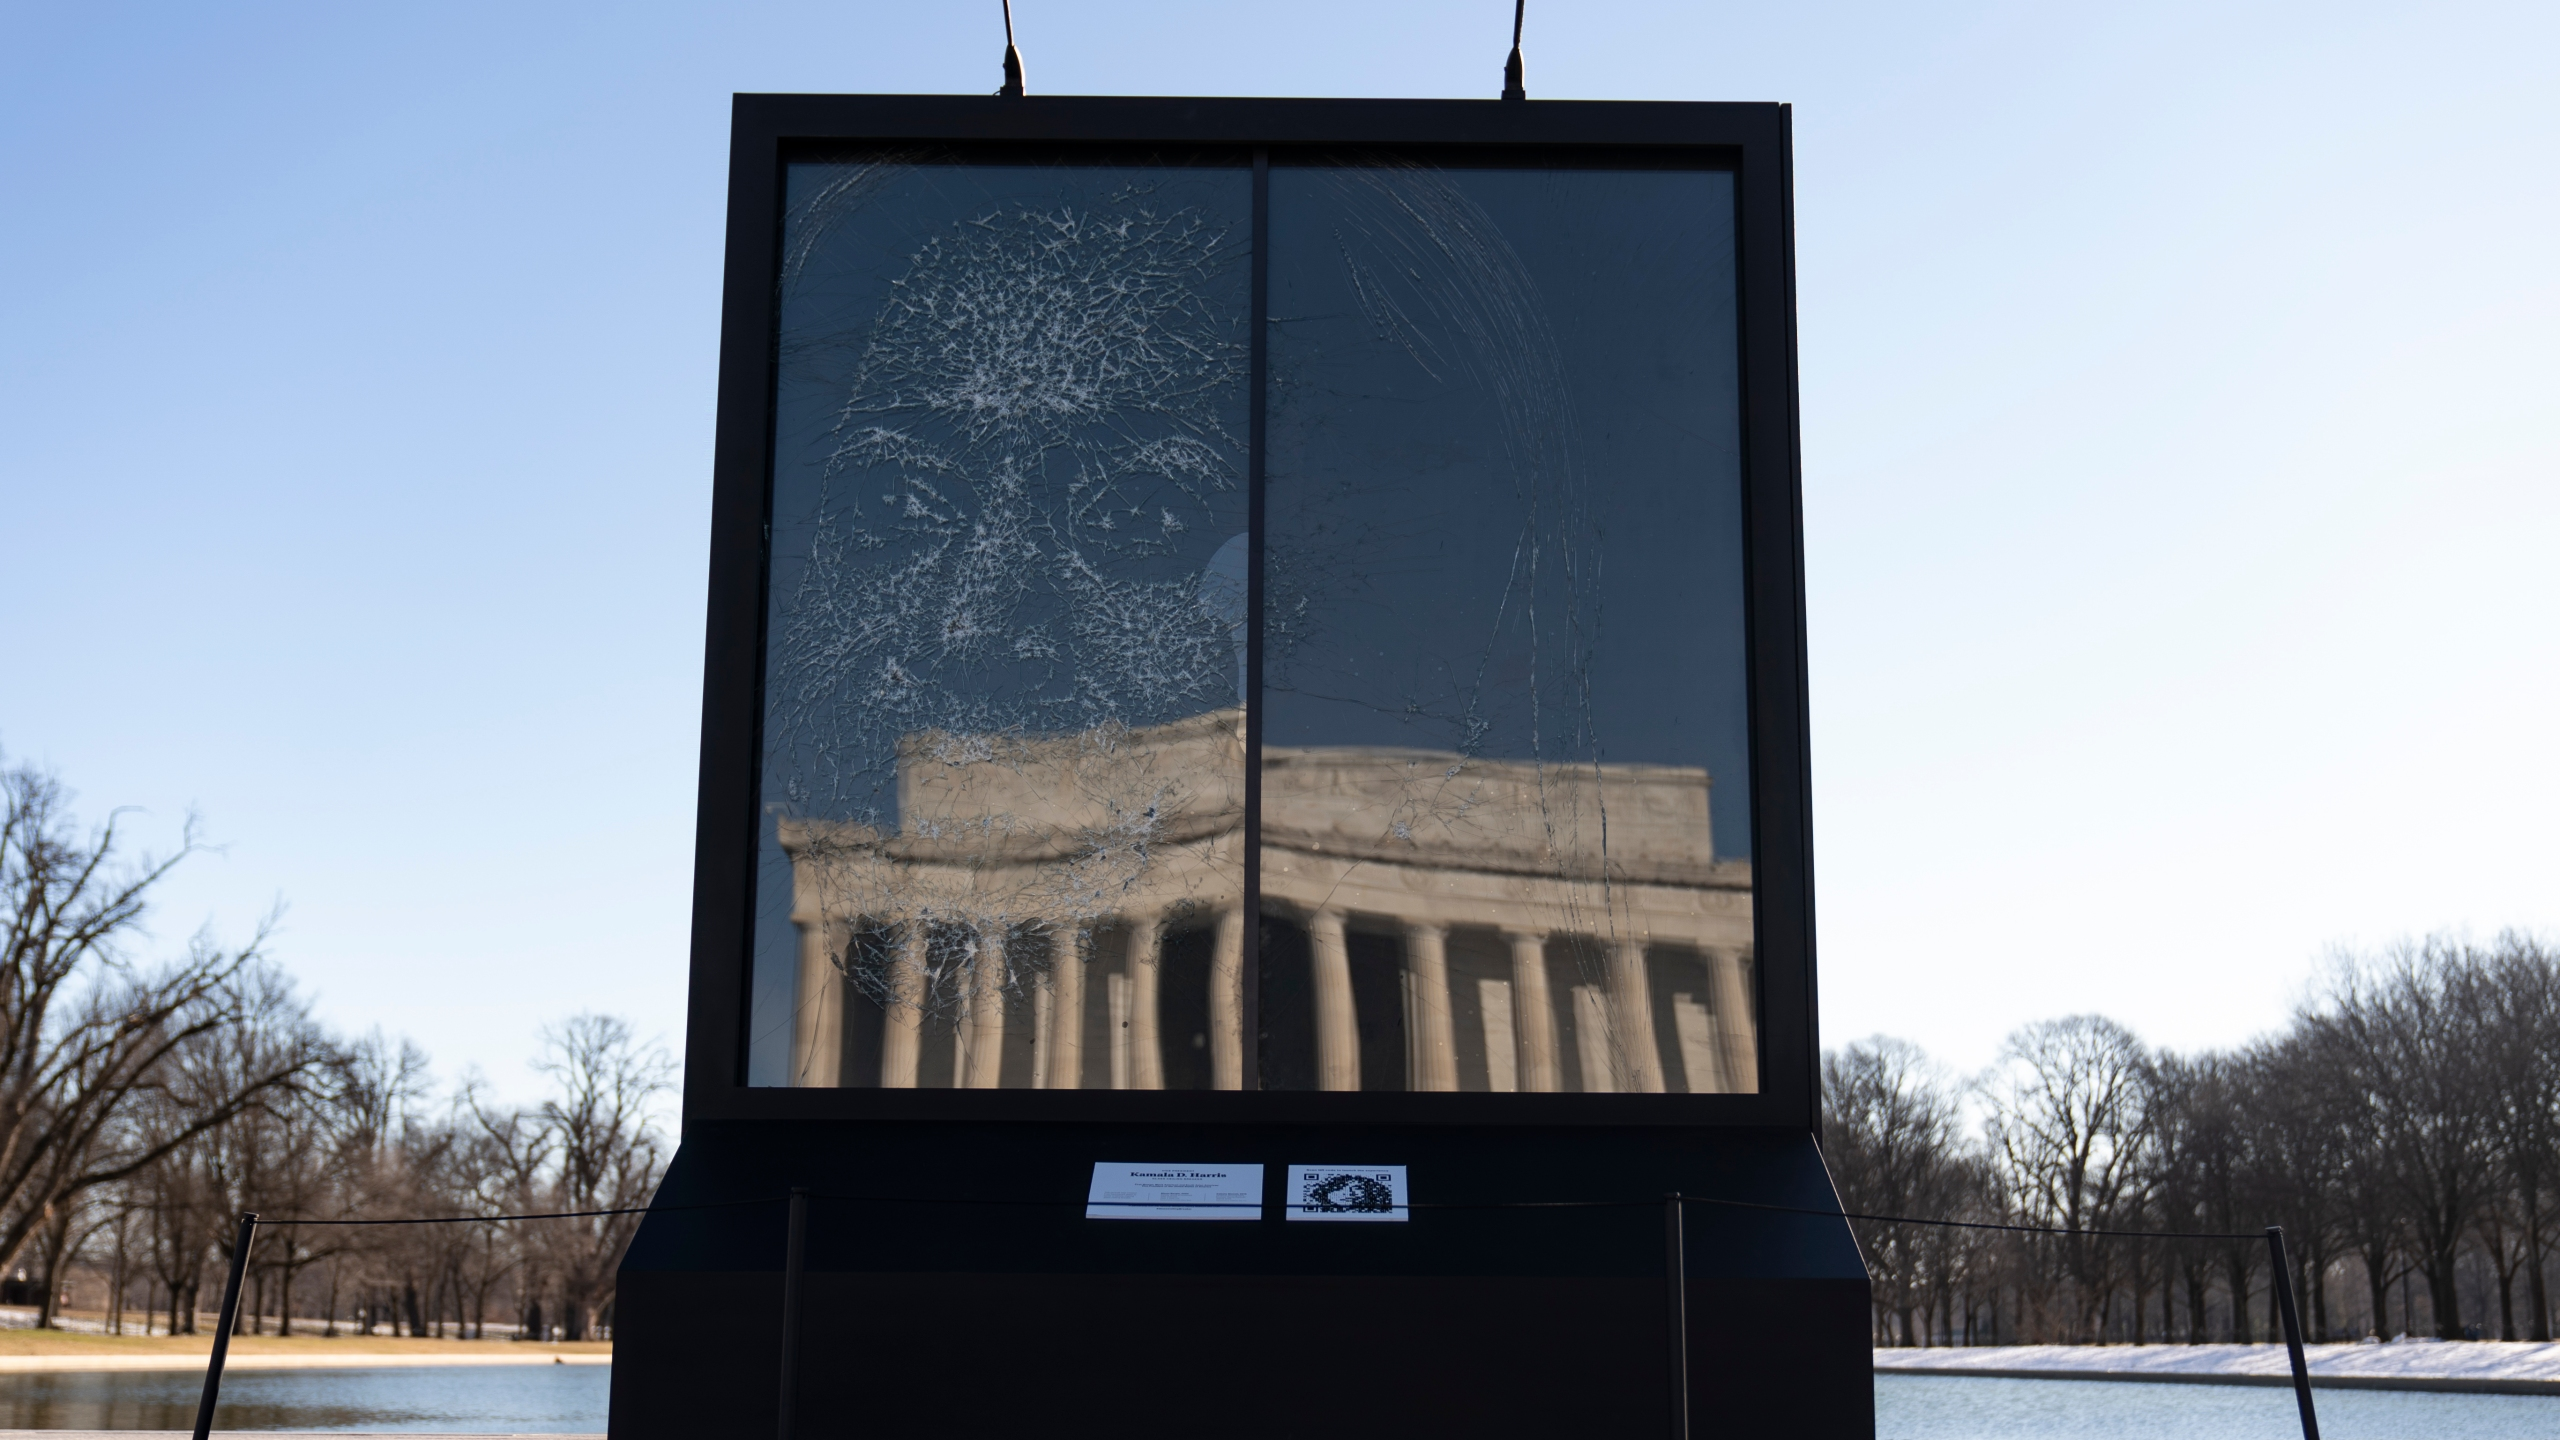 """The installation """"Vice President Kamala Harris Glass Ceiling Breaker"""" is seen at the Lincoln Memorial, reflected, in Washington, Wednesday, Feb. 4, 2021. Vice President Kamala Harris' barrier-breaking career has been memorialized in a portrait depicting her face emerging from the cracks in a massive sheet of glass. Using a photo of Harris that taken by photographer Celeste Sloman, artist Simon Berger lightly hammered on the slab of laminated glass to create the portrait of Harris. (AP Photo/Carolyn Kaster)"""